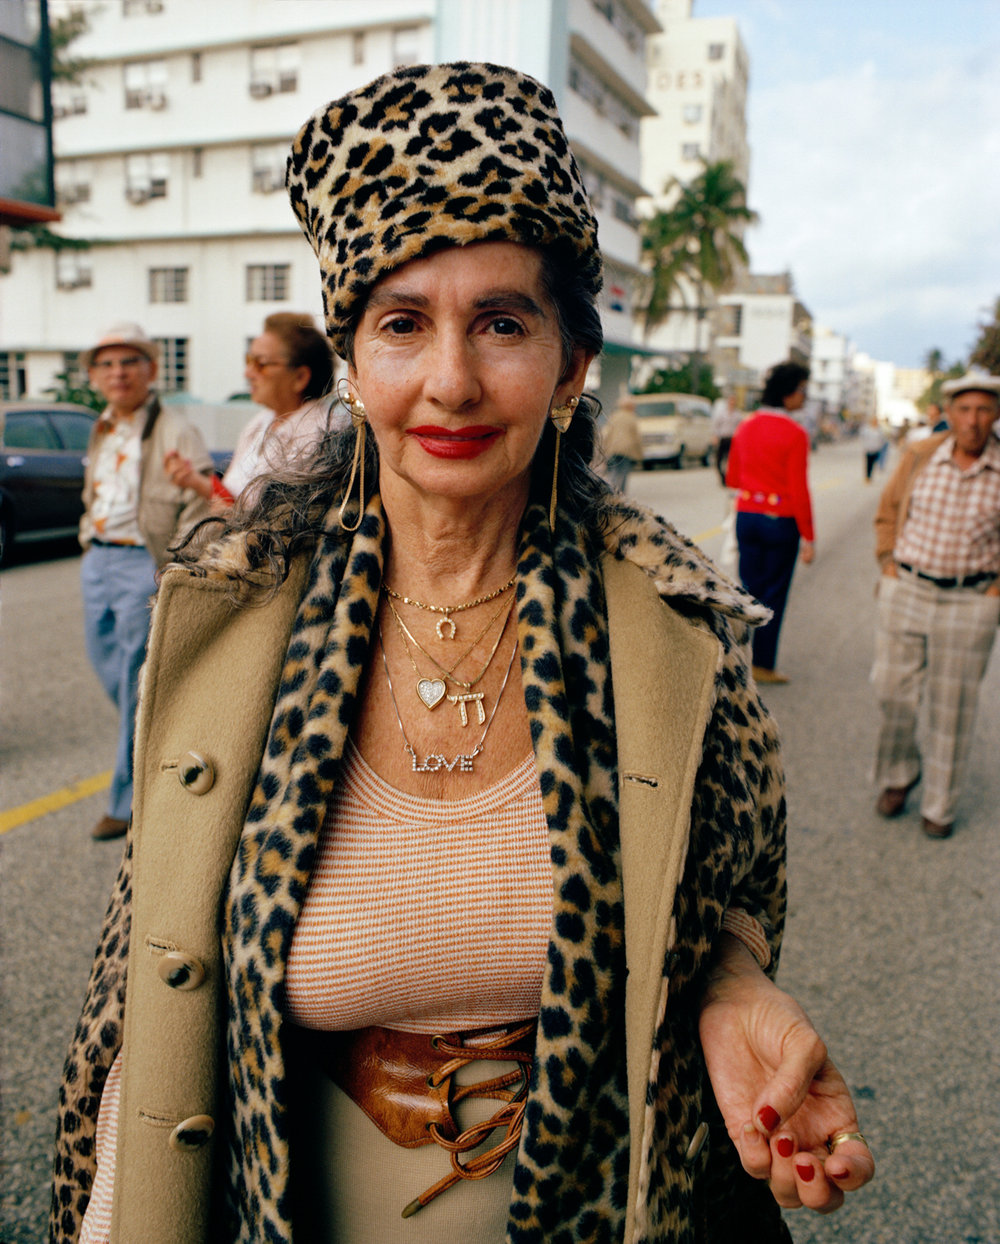 Untitled (Leopard Lady) Miami - South Beach 1982-85